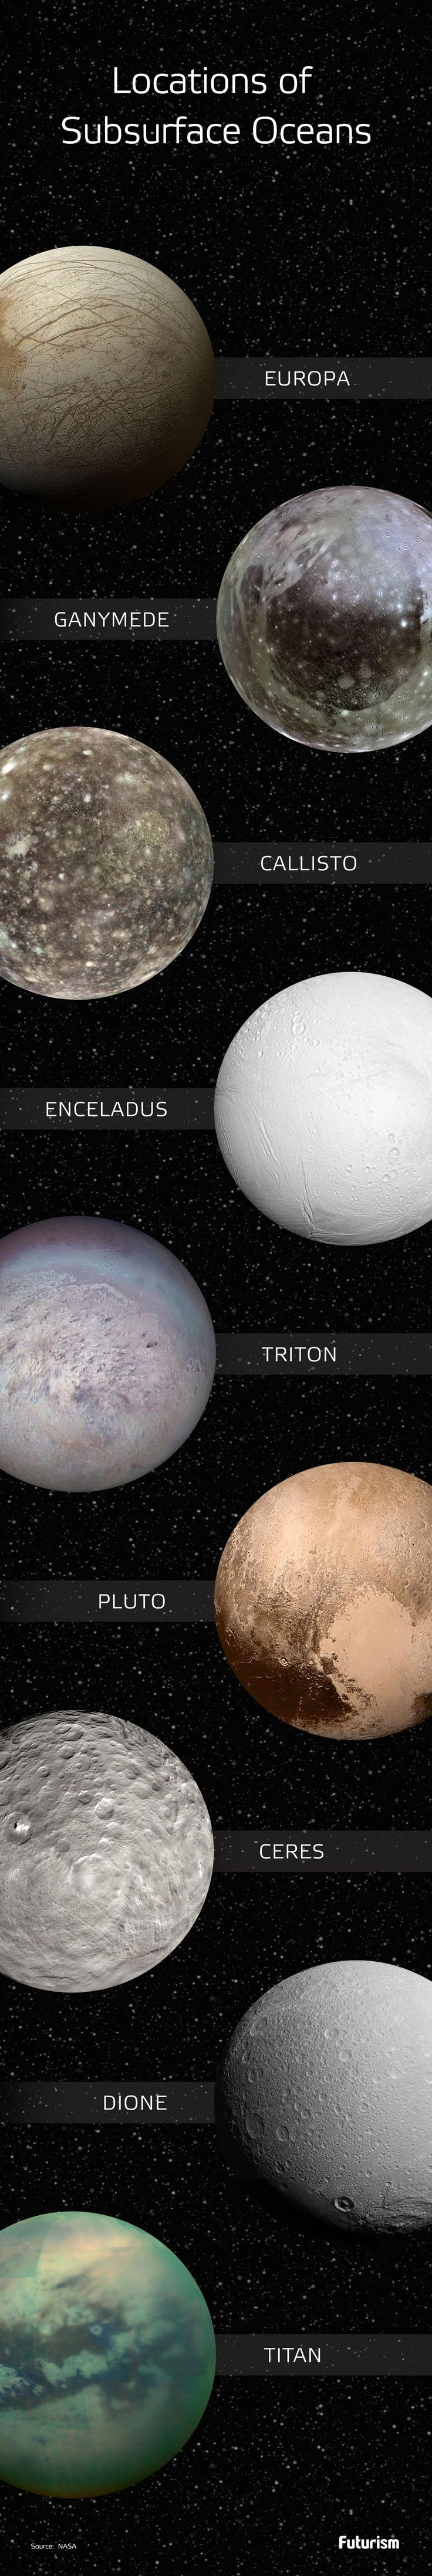 It's Official: NASA is Heading to Our Solar System's Ocean Worlds